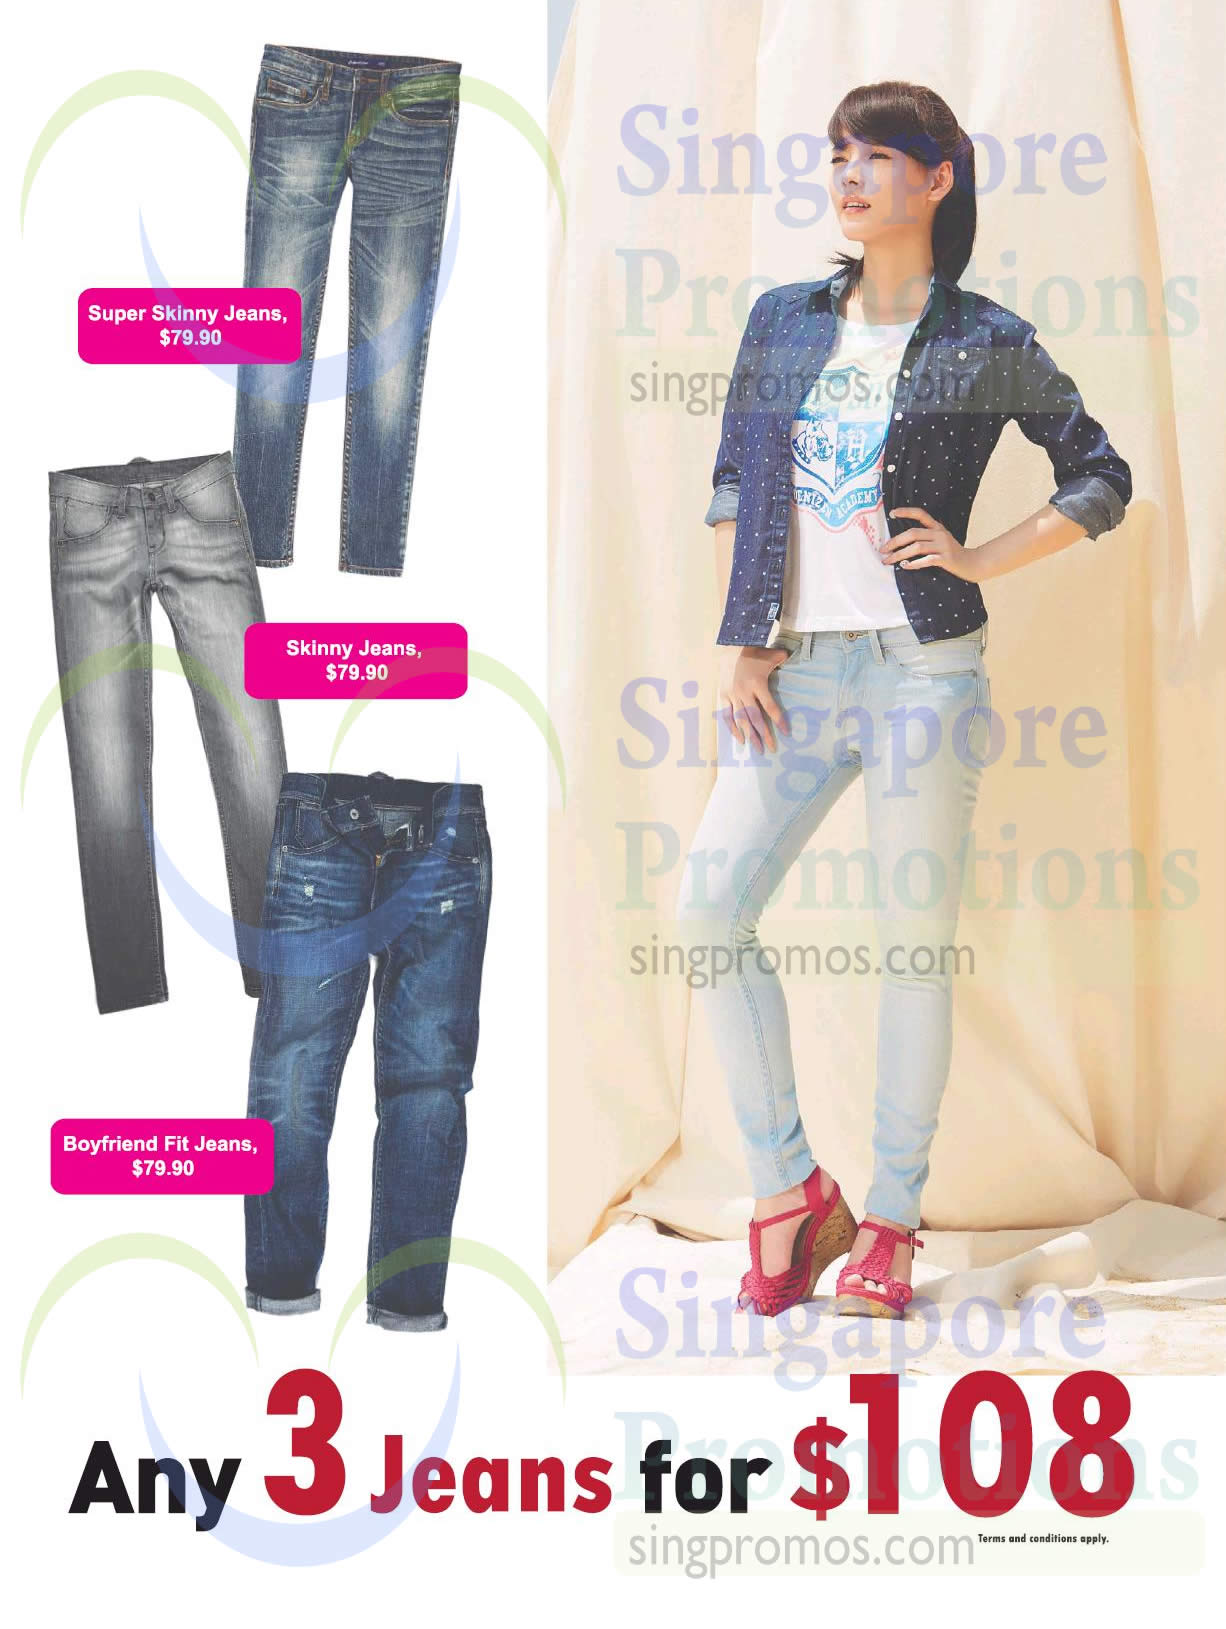 Any 3 Jeans for 108 Dollar, Super Skinny Jeans, Boyfriend Fit Jeans